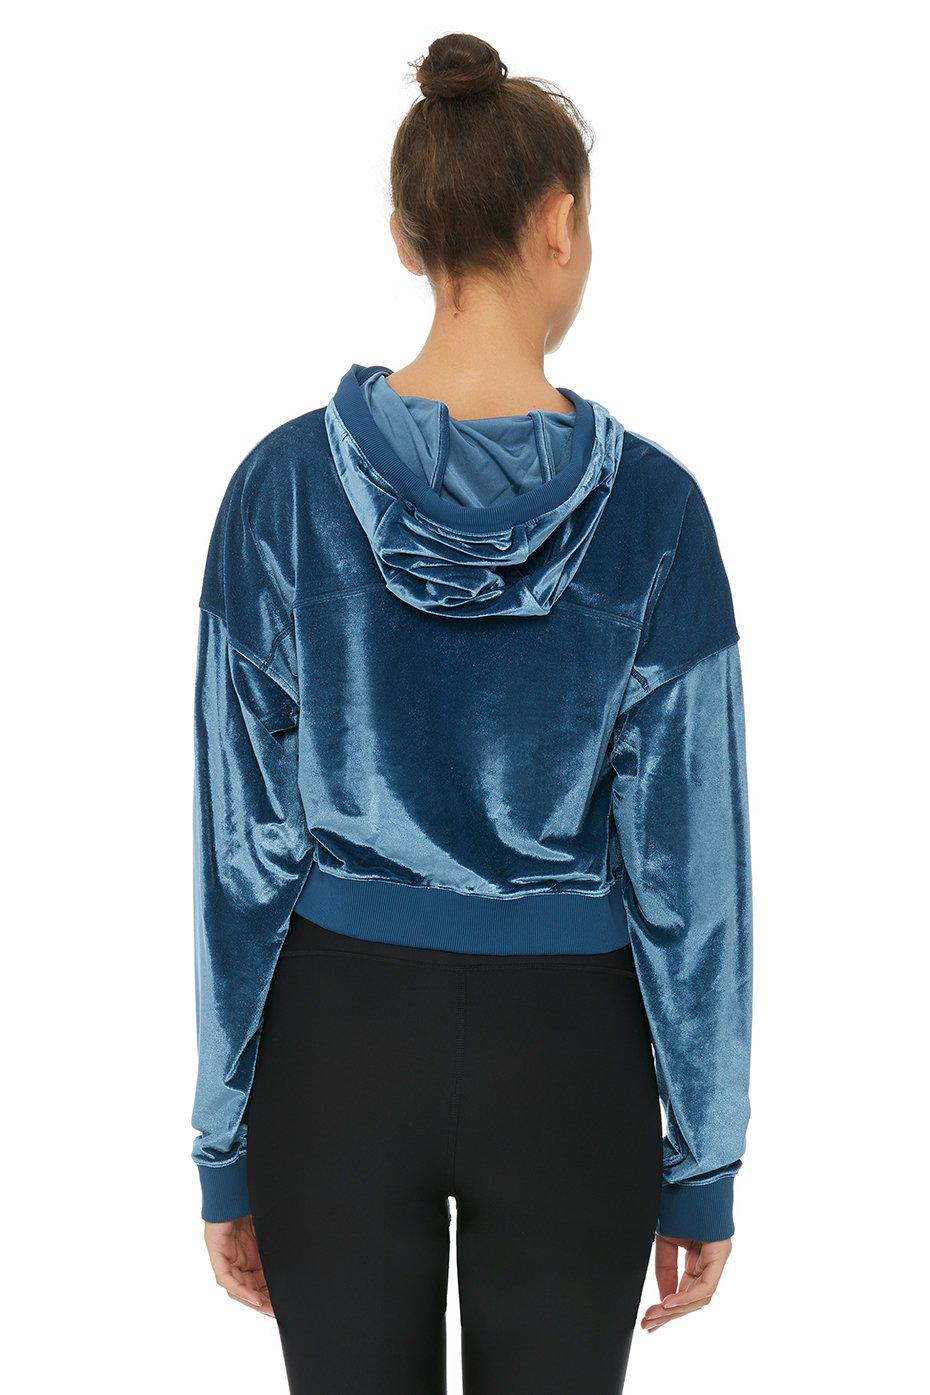 Layer Long Sleeve Top - Eclipse 2